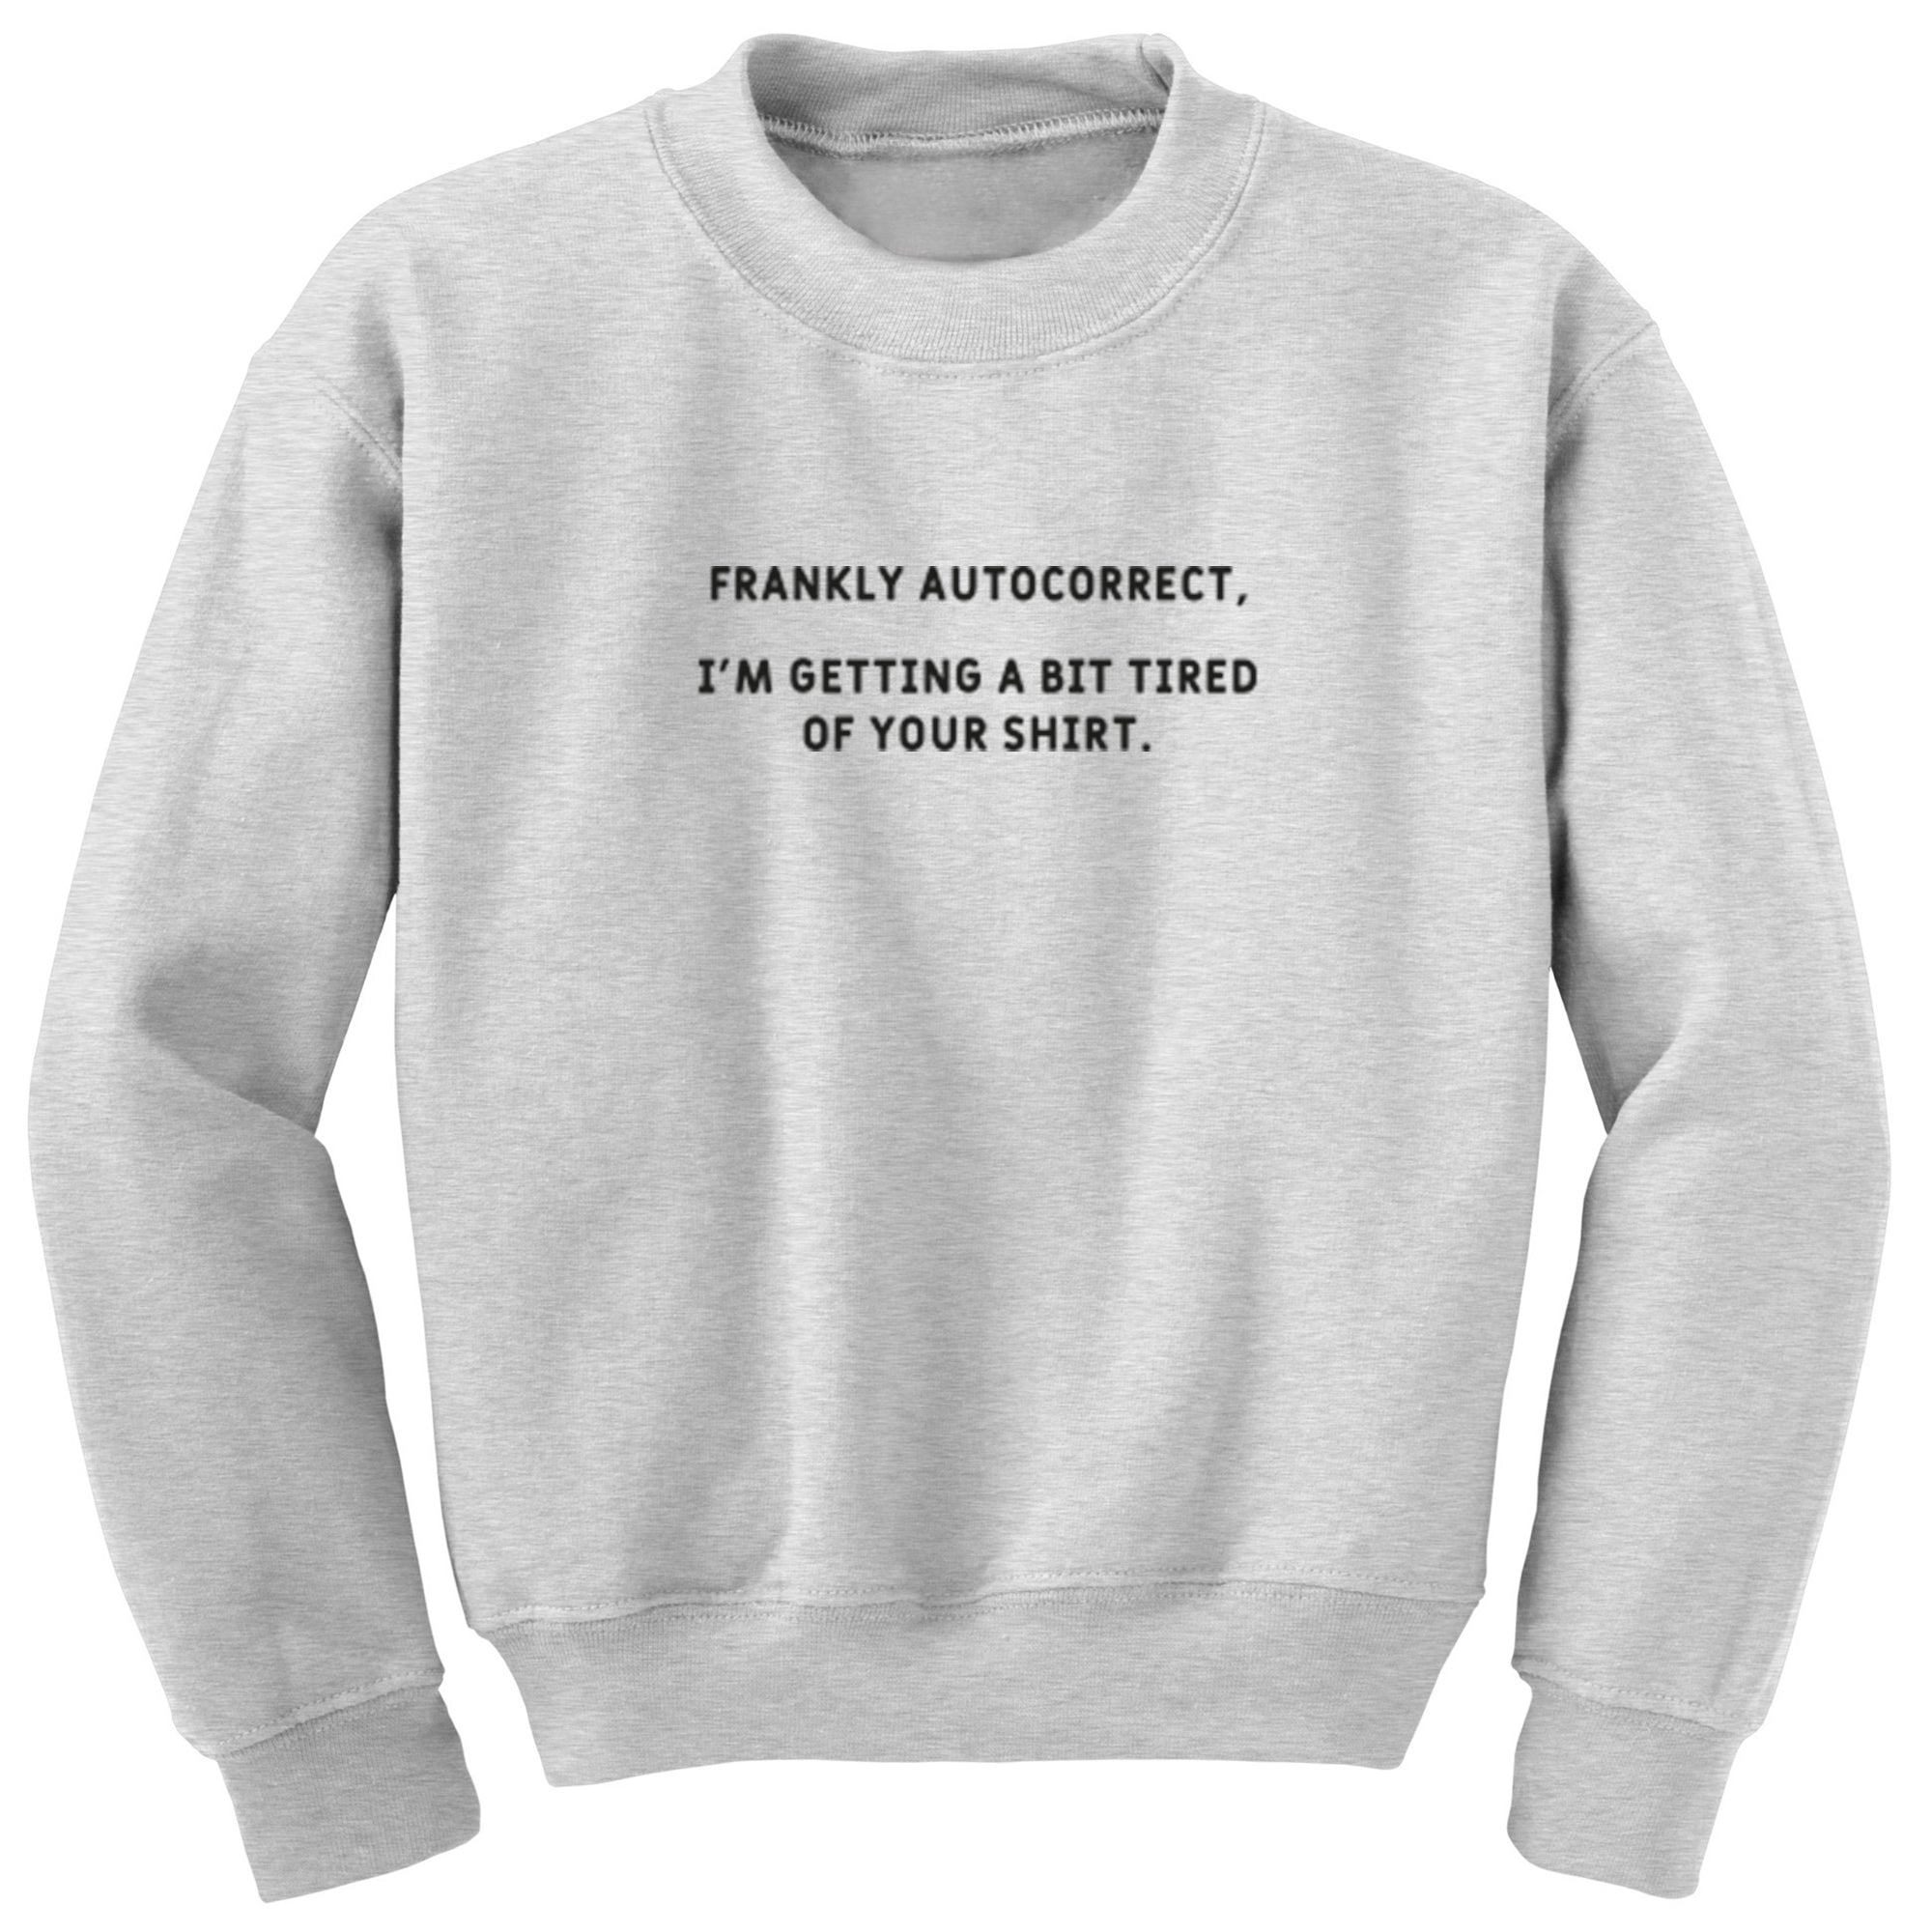 Frankly Autocorrect, I'm Getting A Bit Tired Of Your Shirt. Unisex Jumper S1110 - Illustrated Identity Ltd.